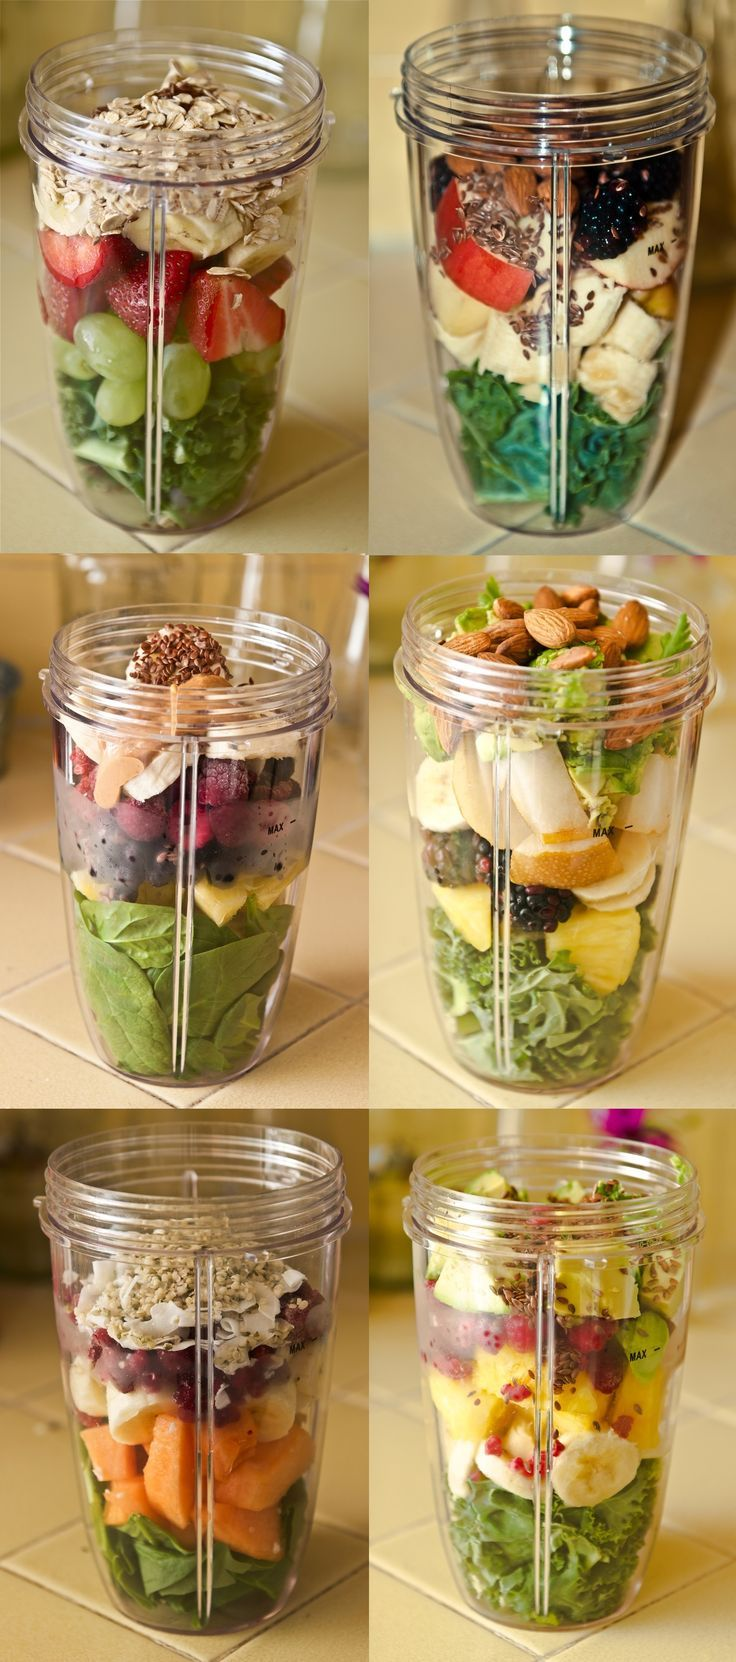 Great recipes for smoothies- hopefully I can use my magic bullet since I don't…